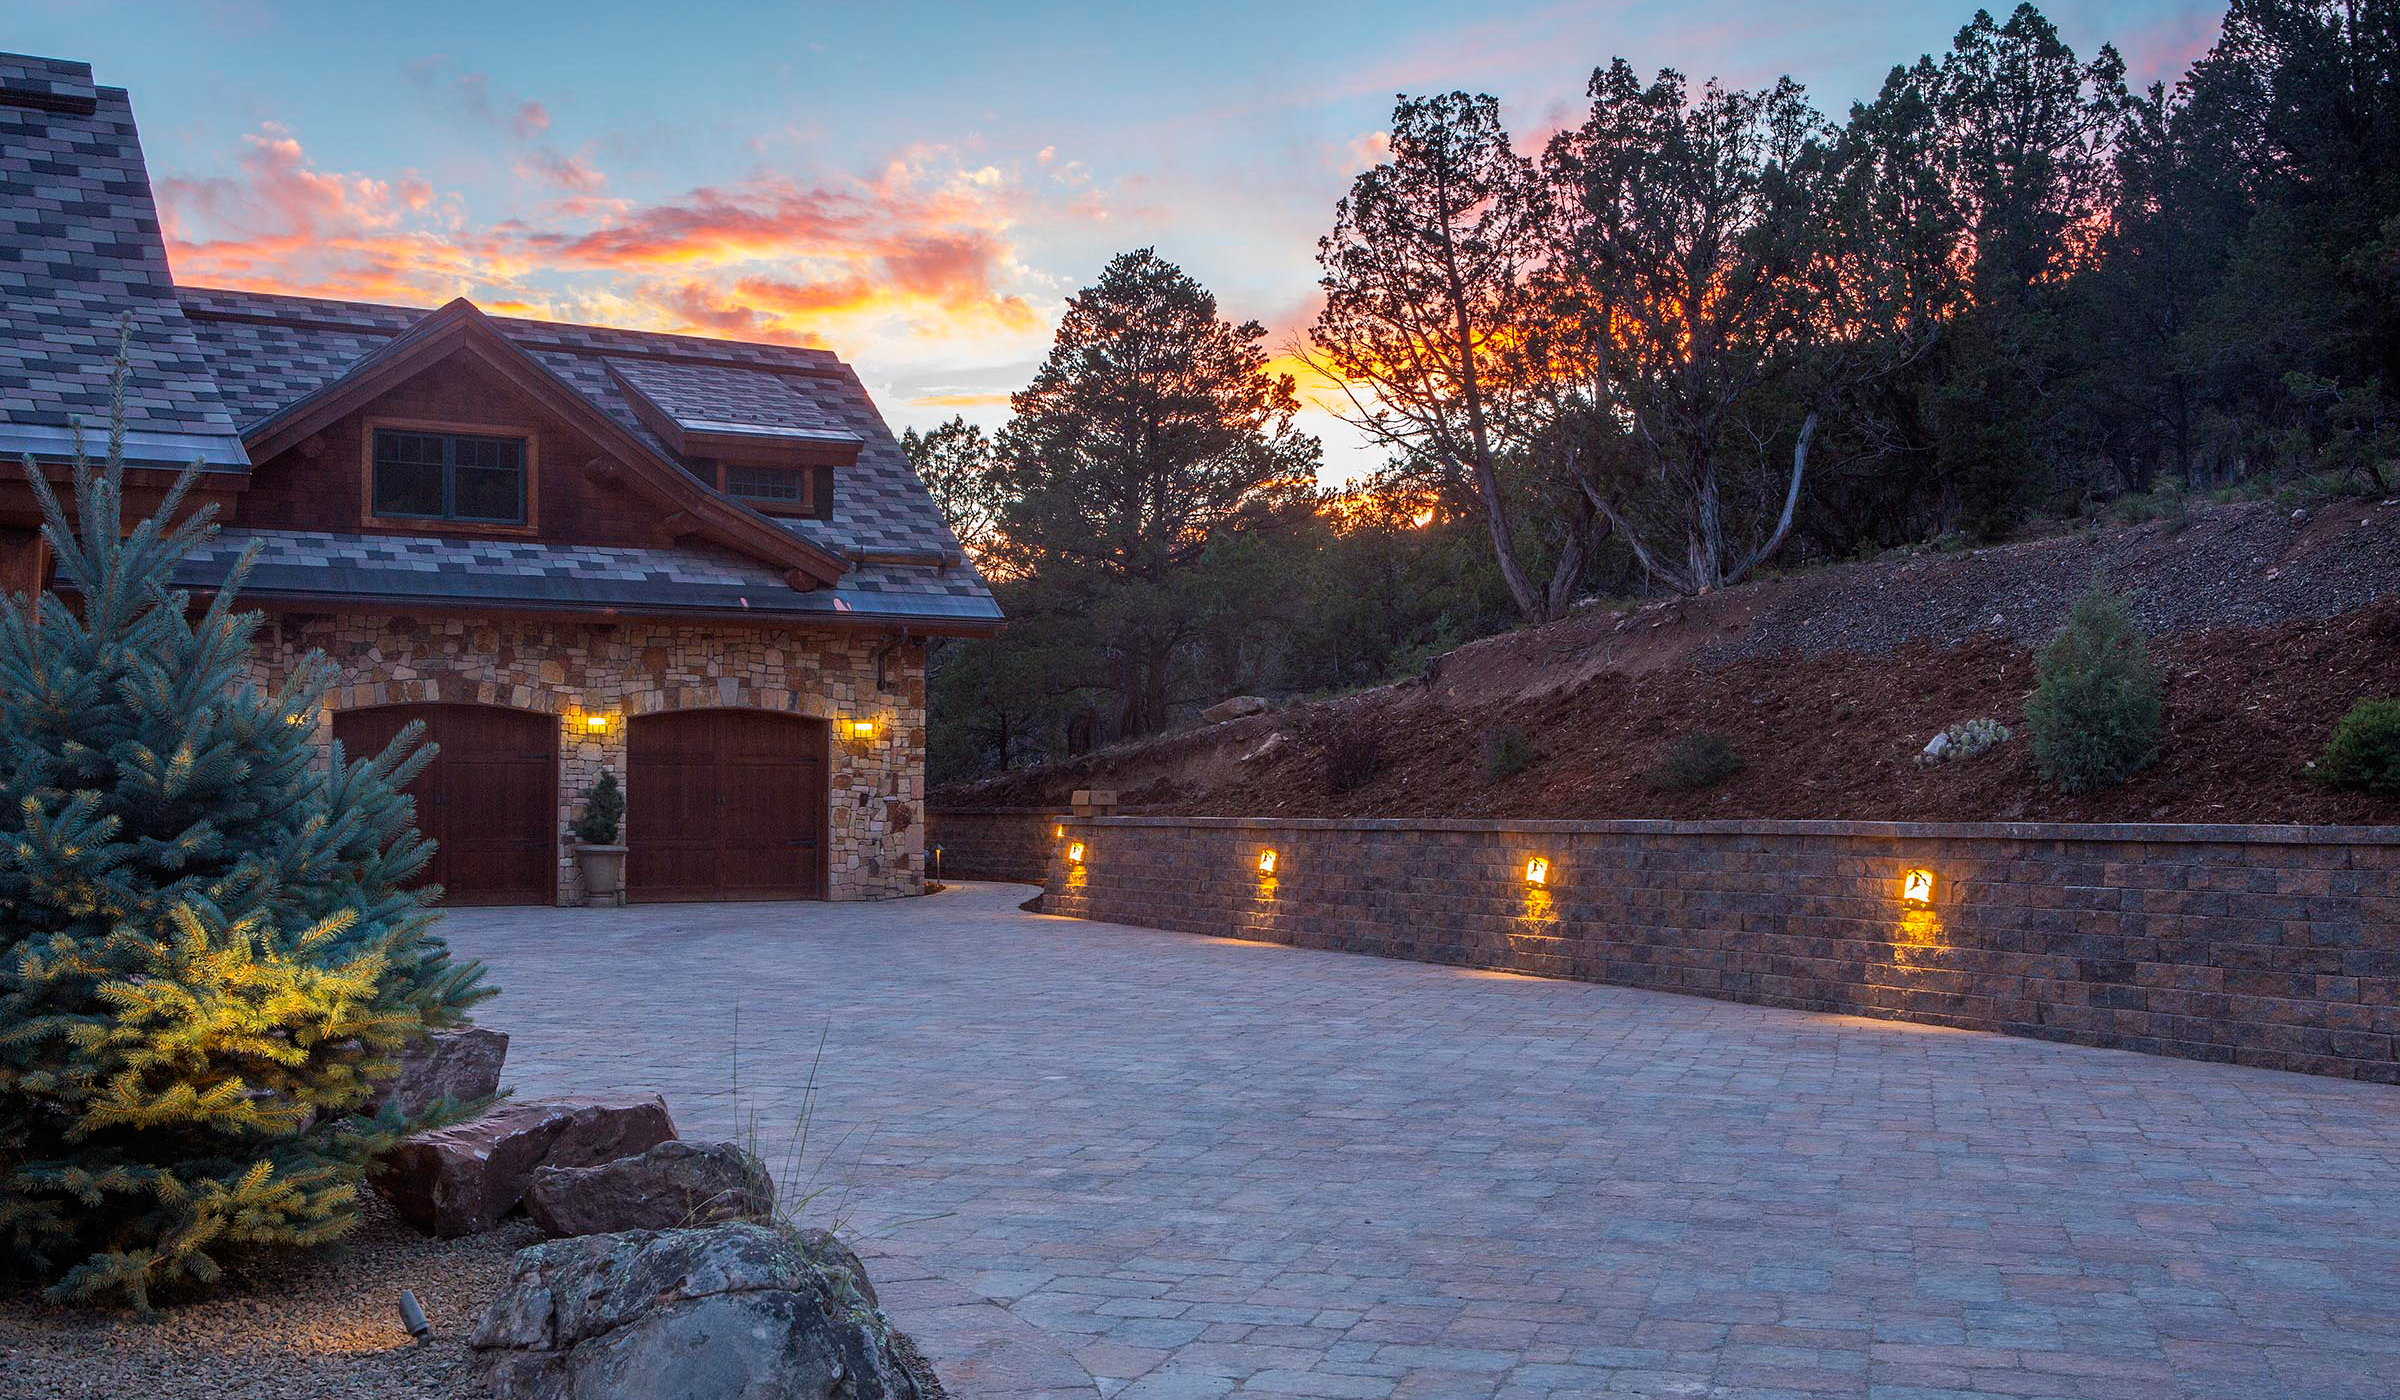 Flagstaff Landscaping Company, paver driveway